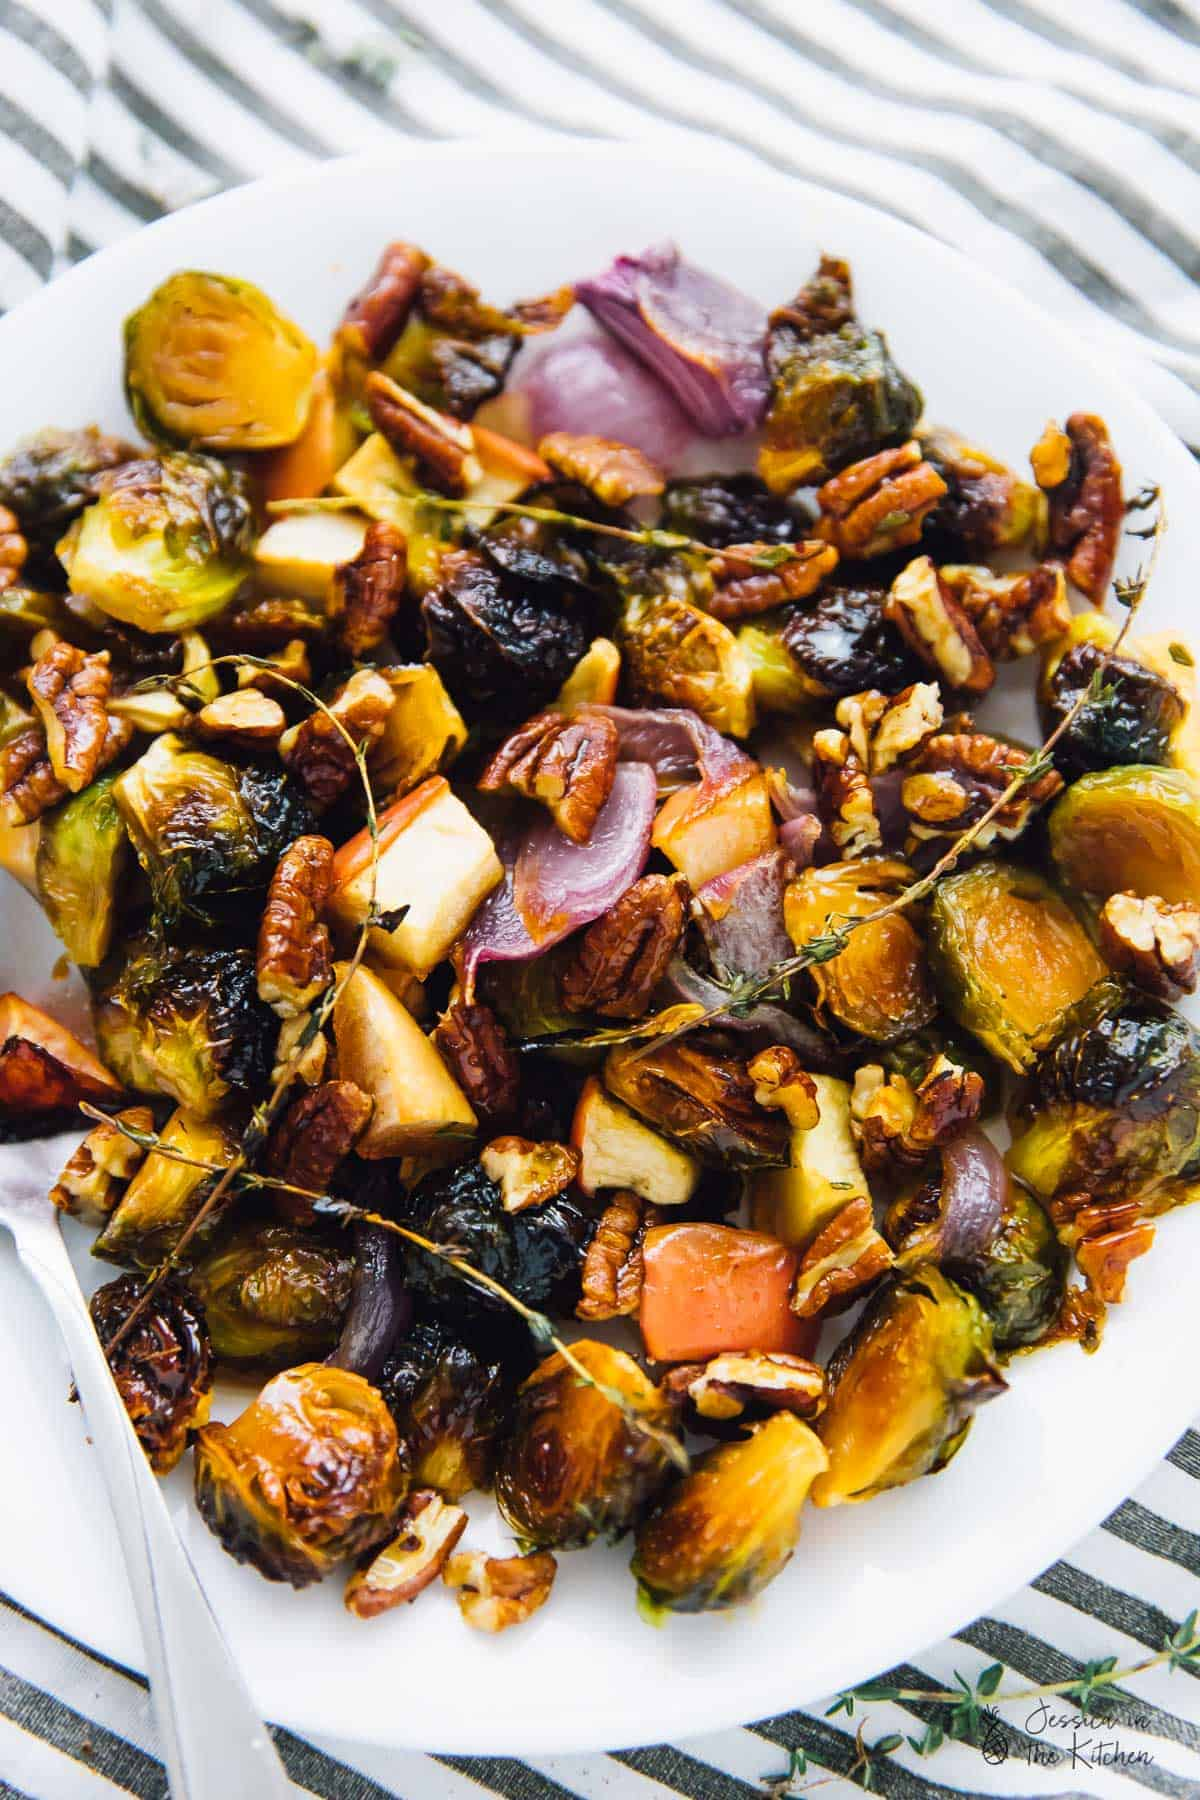 Top down view of roasted brussels sprouts with apples and pecans on a white plate, with a spoon on the side.